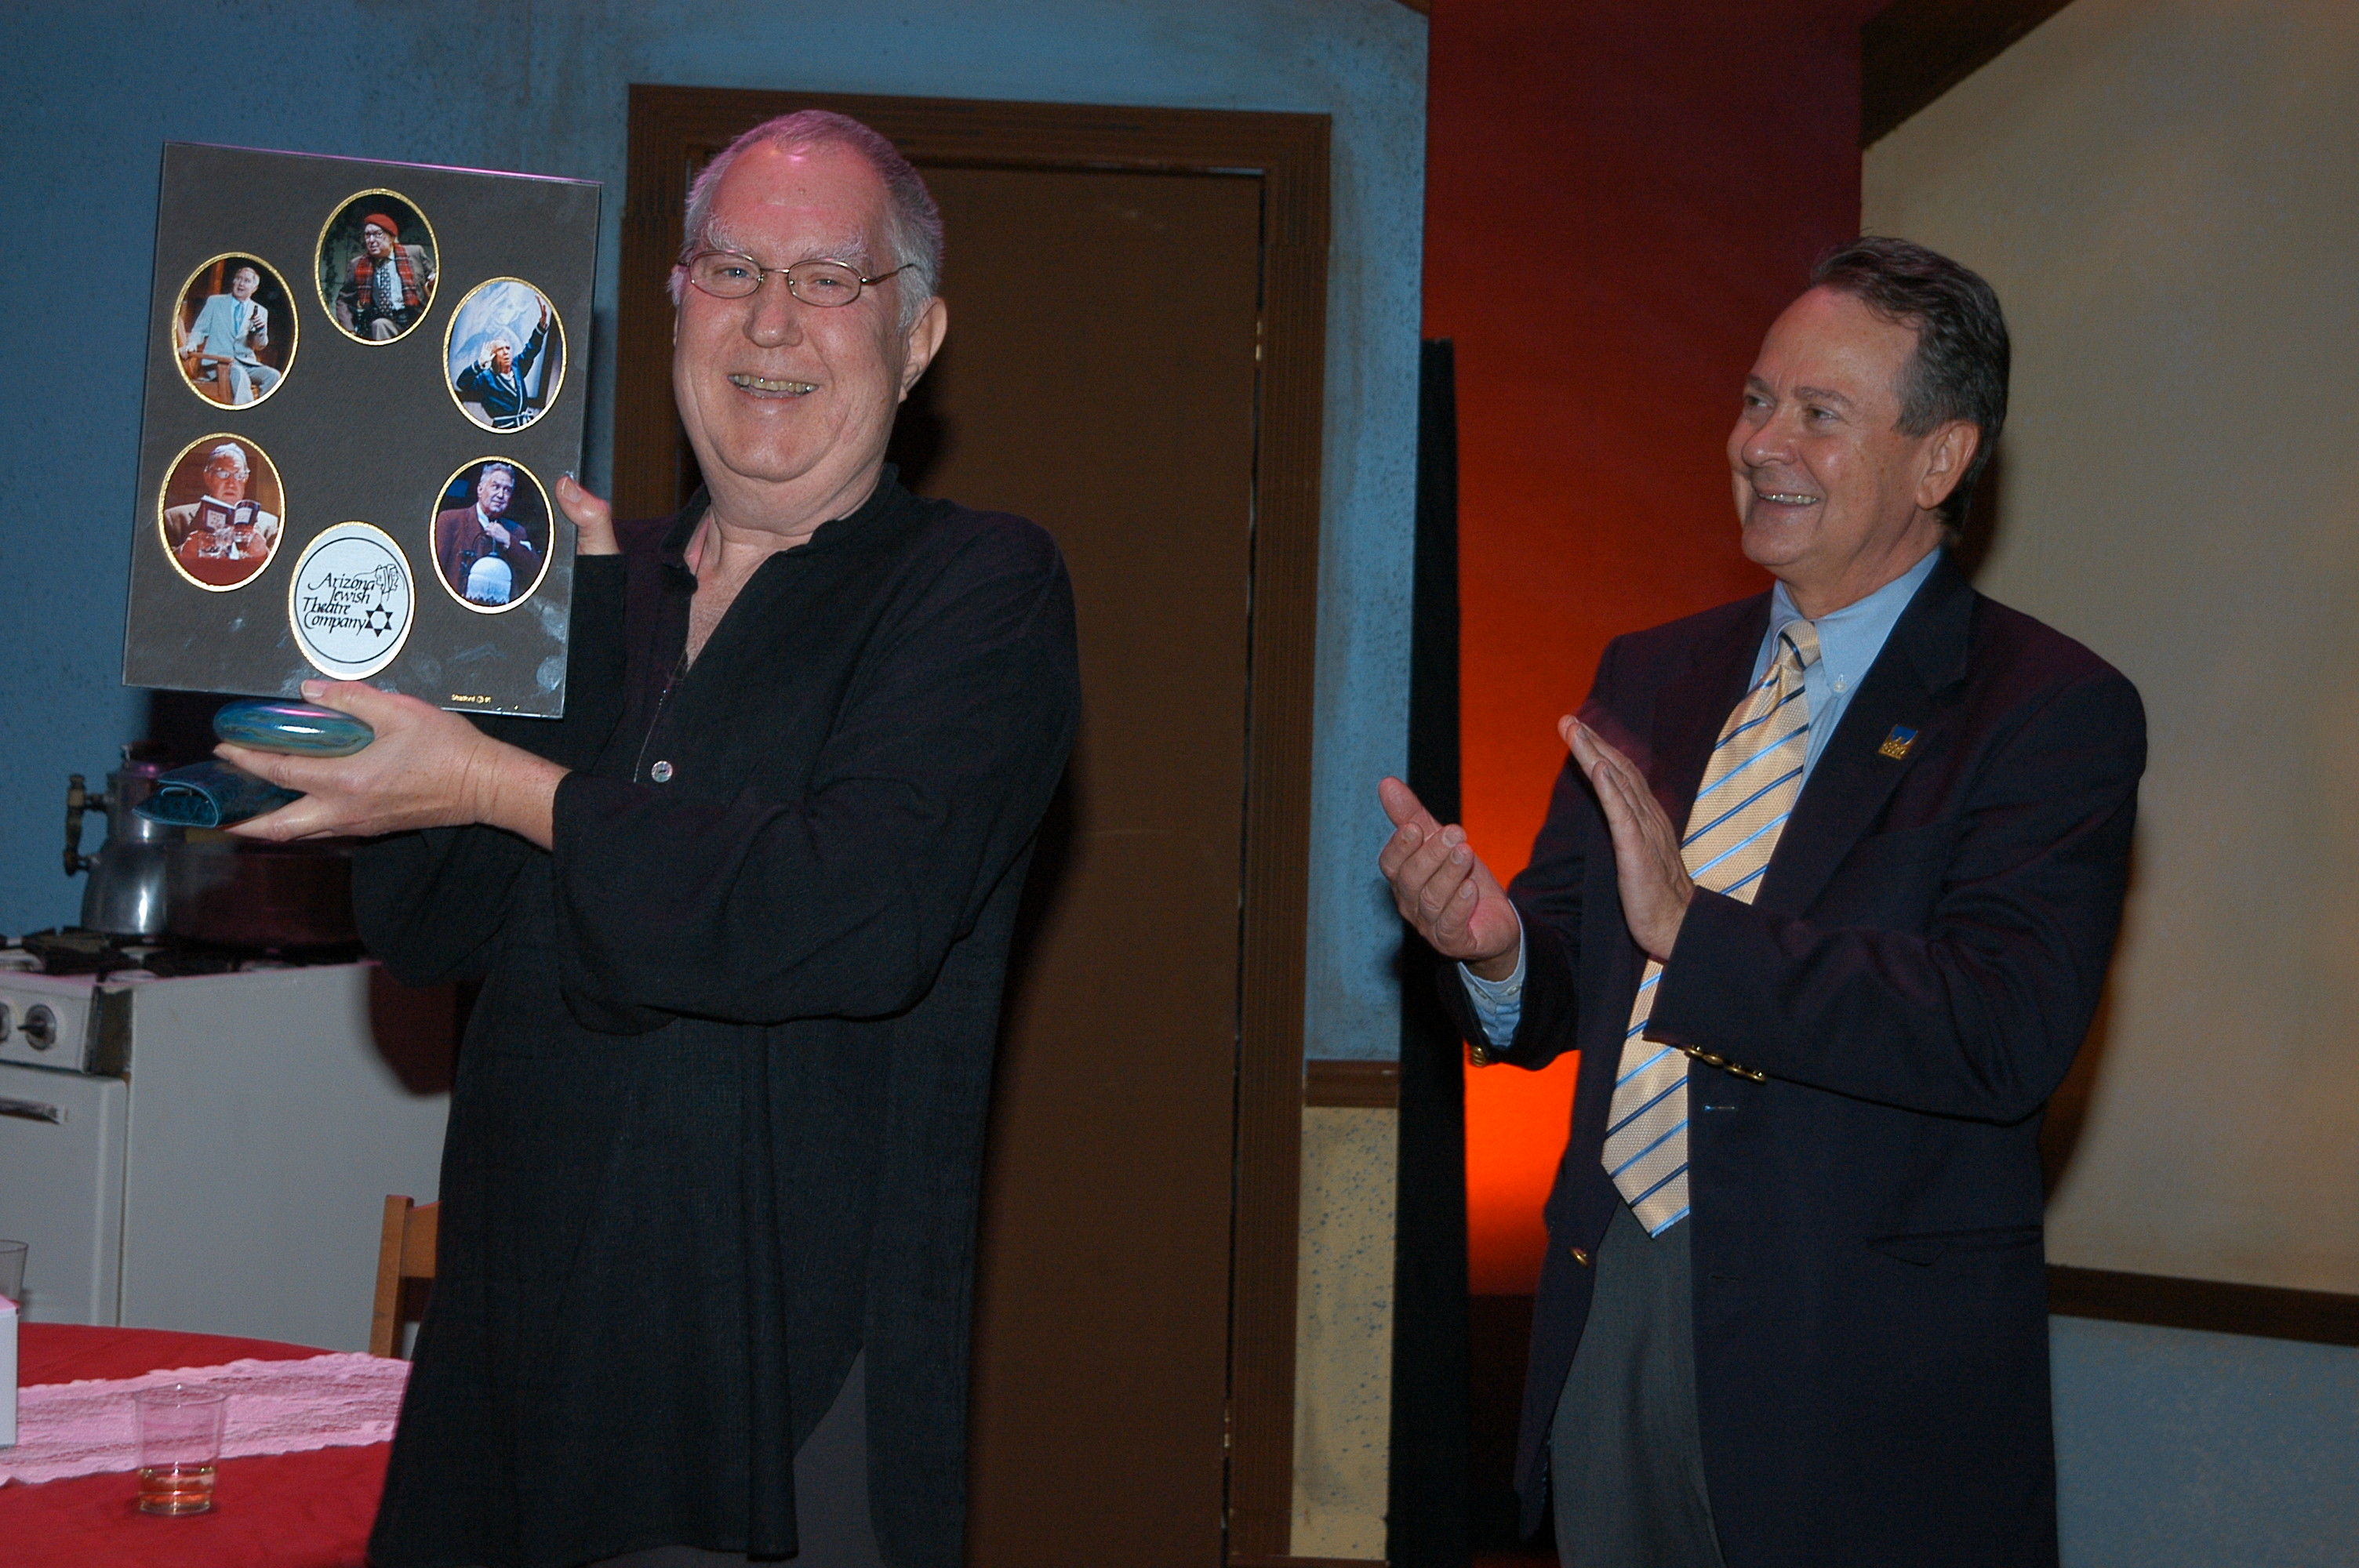 Benjamin receives the Lifetime Achievement Award from Actors Equity Association. (Photo courtesy of Janet Arnold)